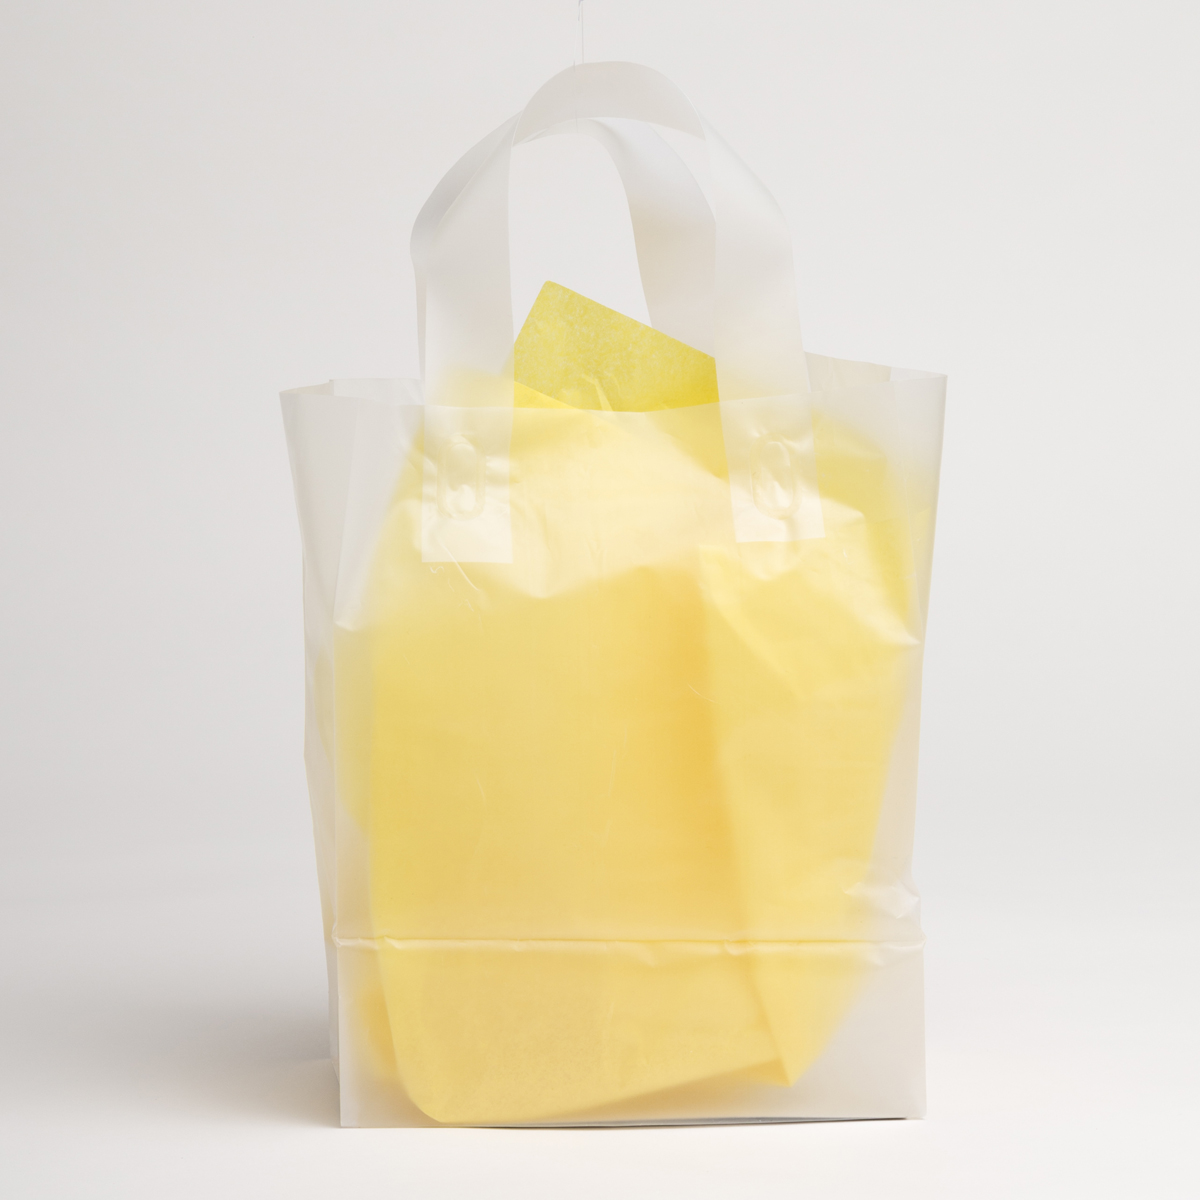 Clear Frost Plastic Shopping Bags - Medium | A&B Store ...